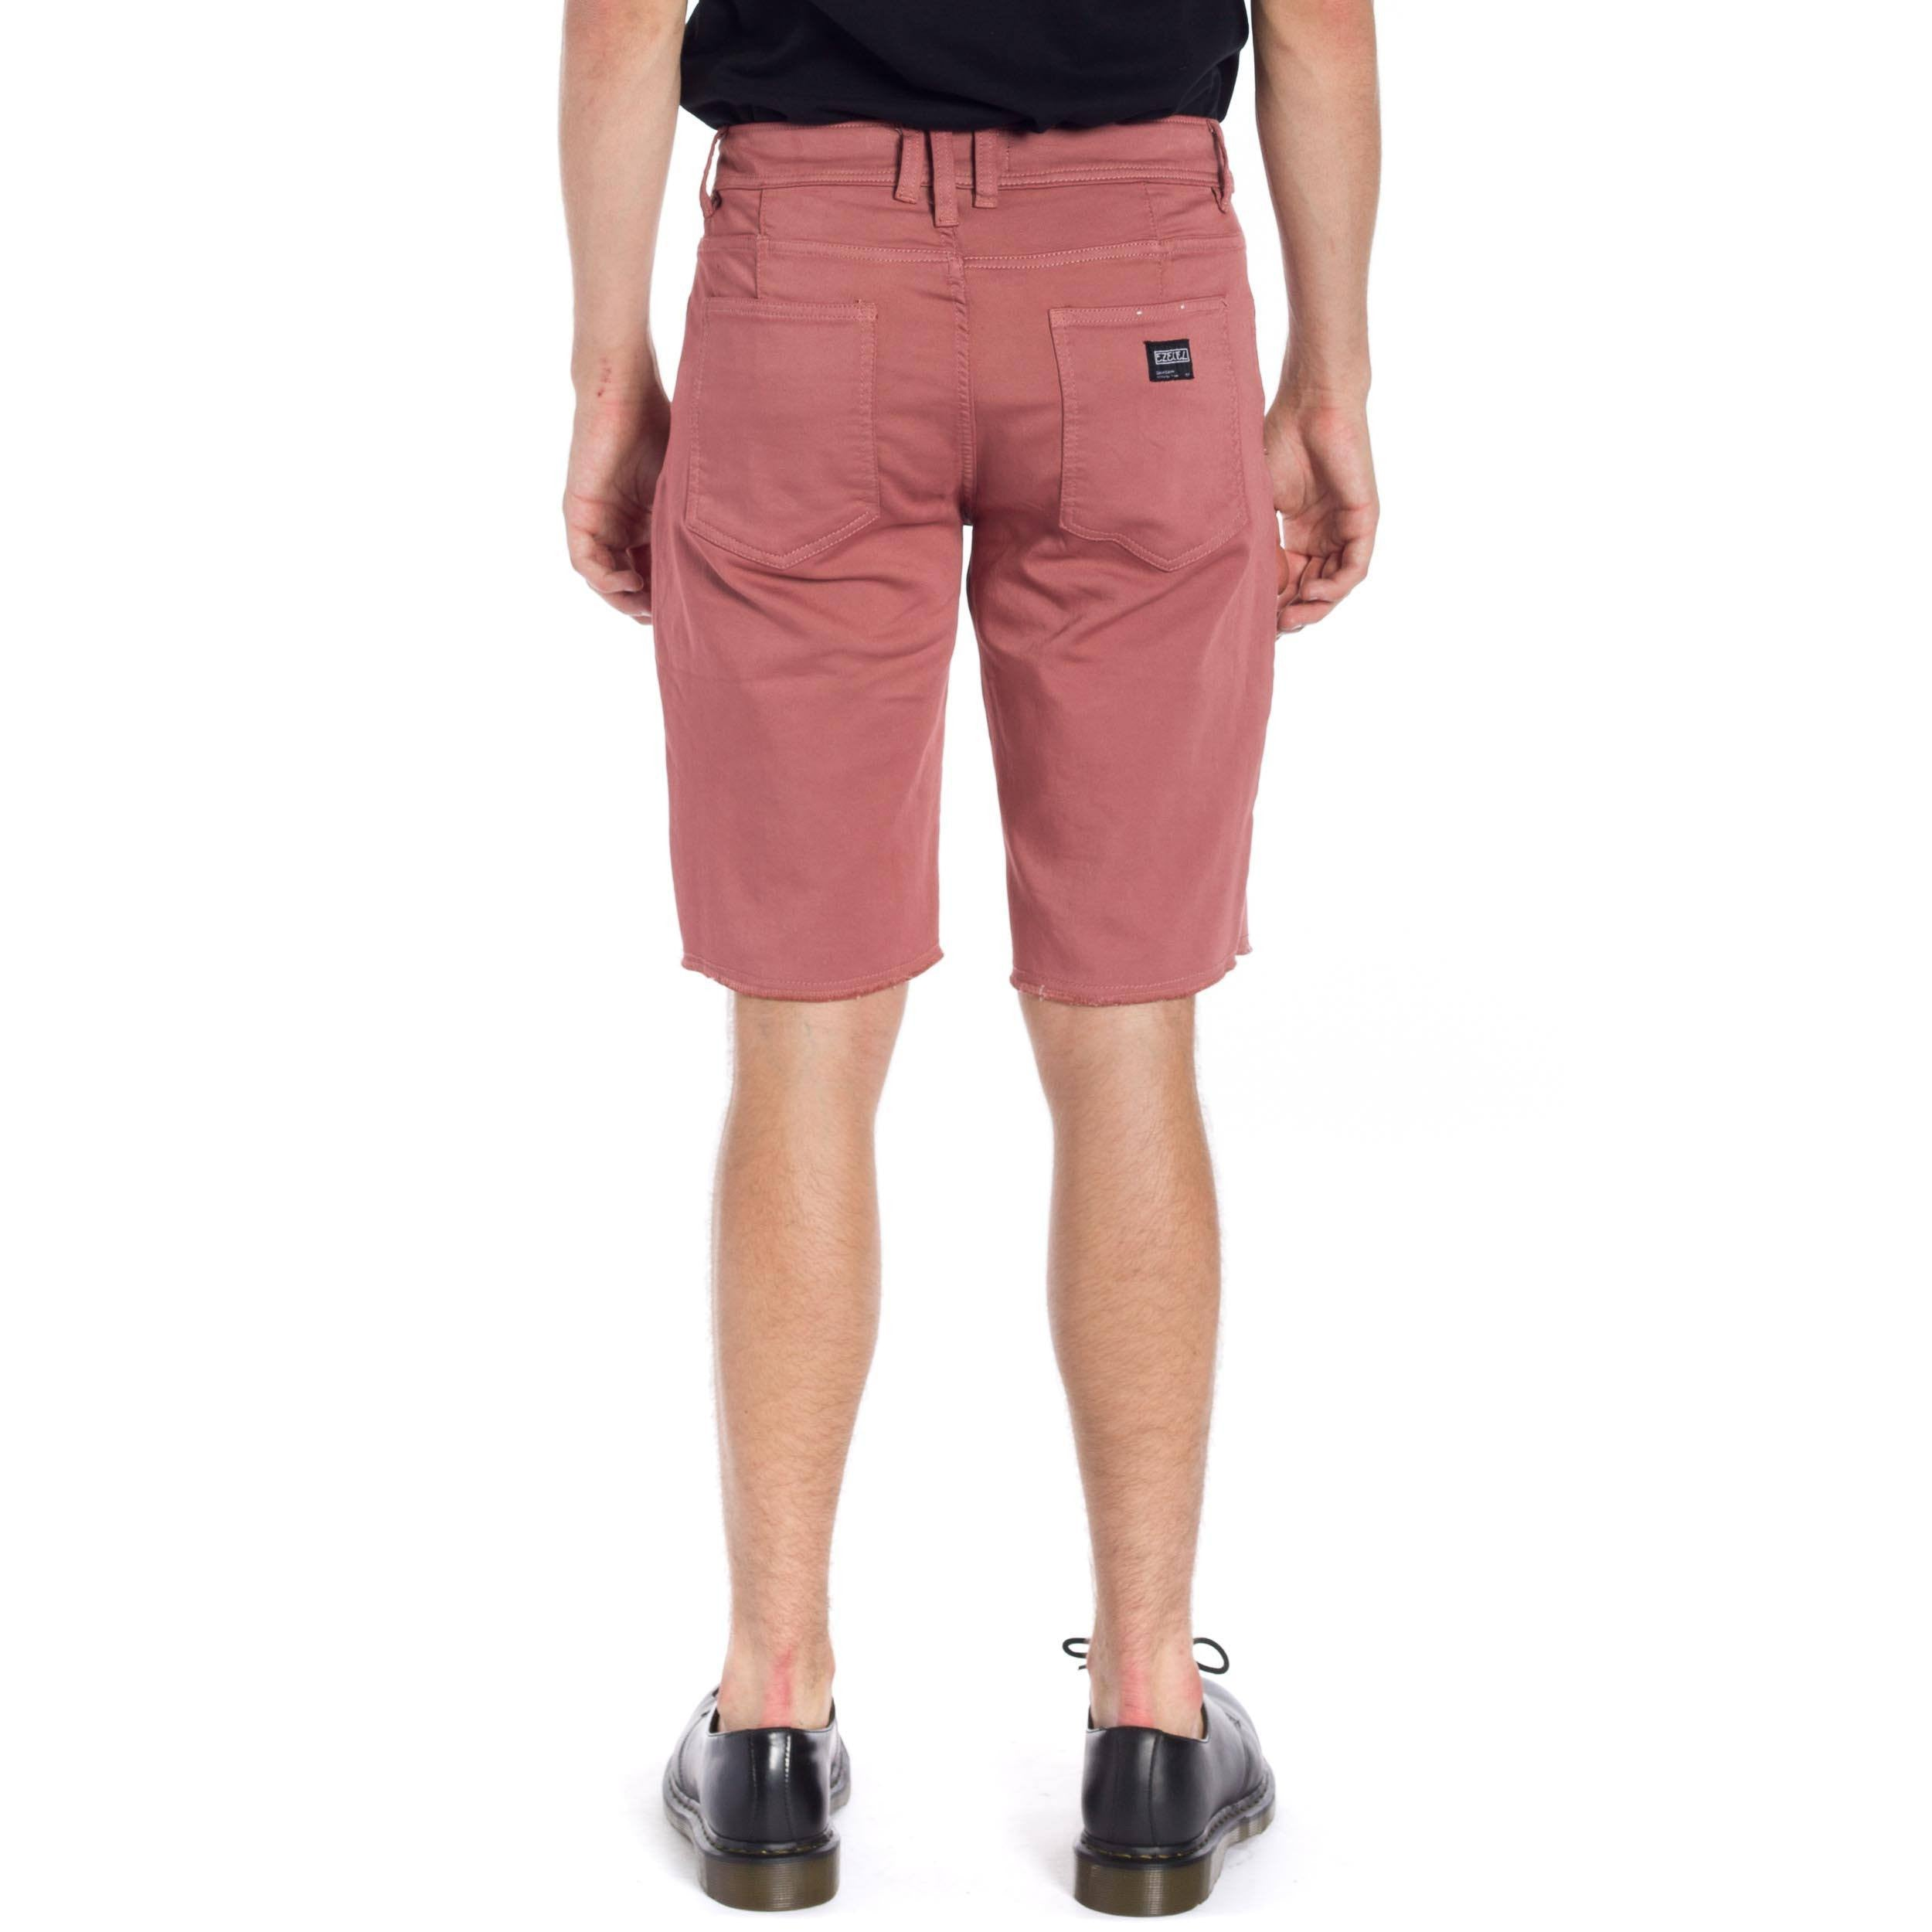 Now Denim Short - Dark Rose